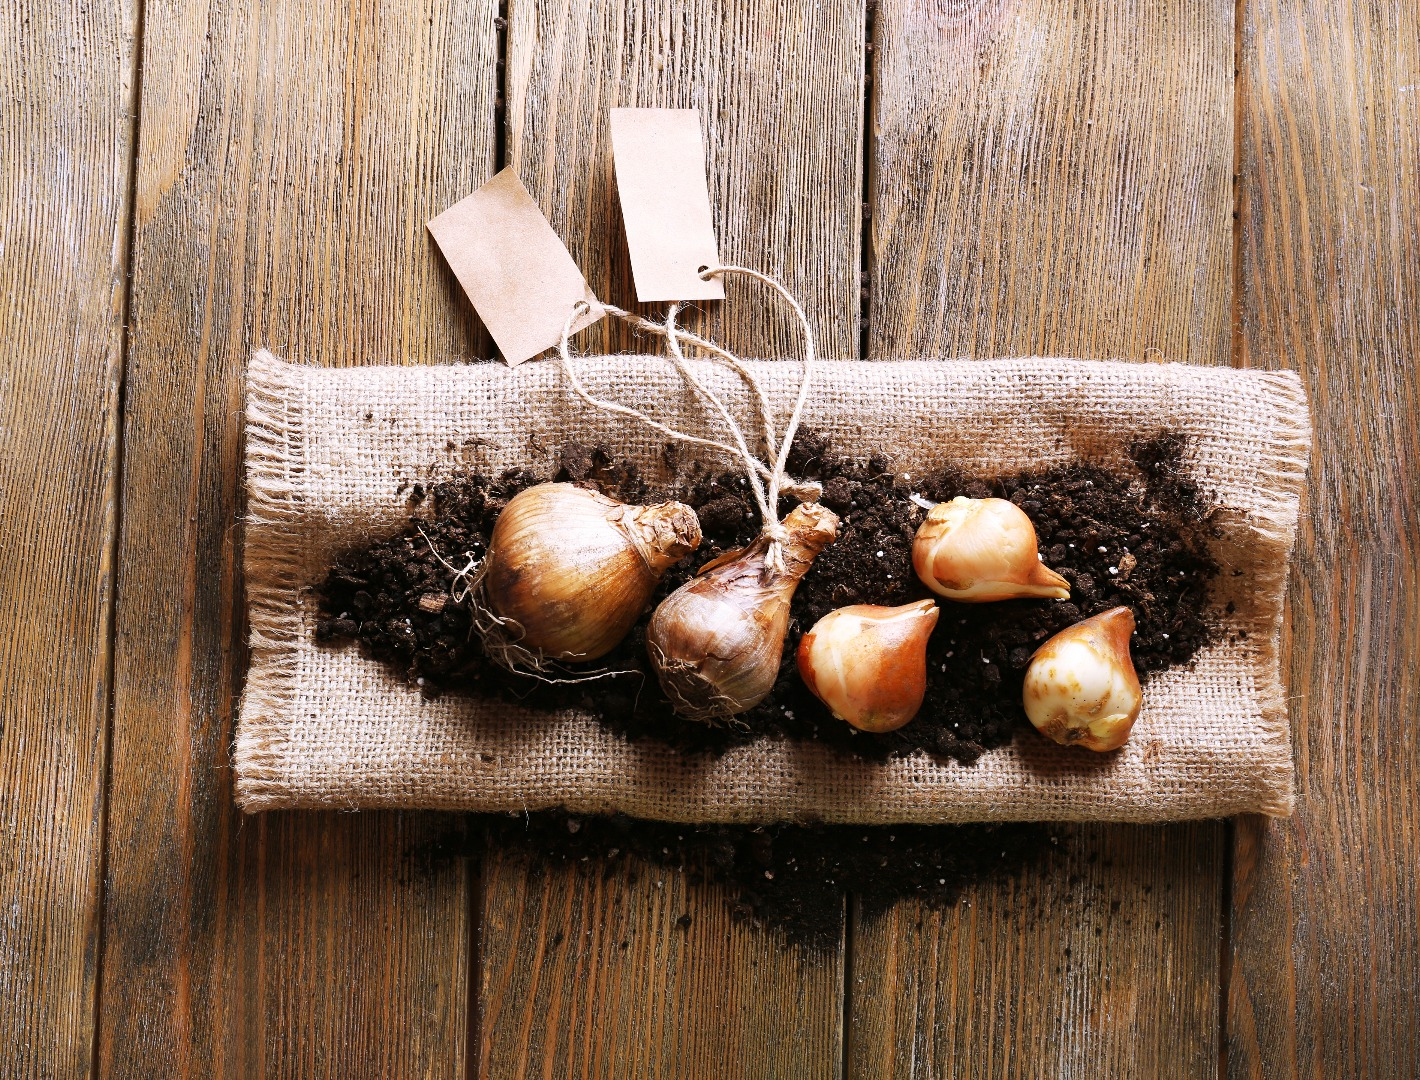 daffodil bulbs on hessian